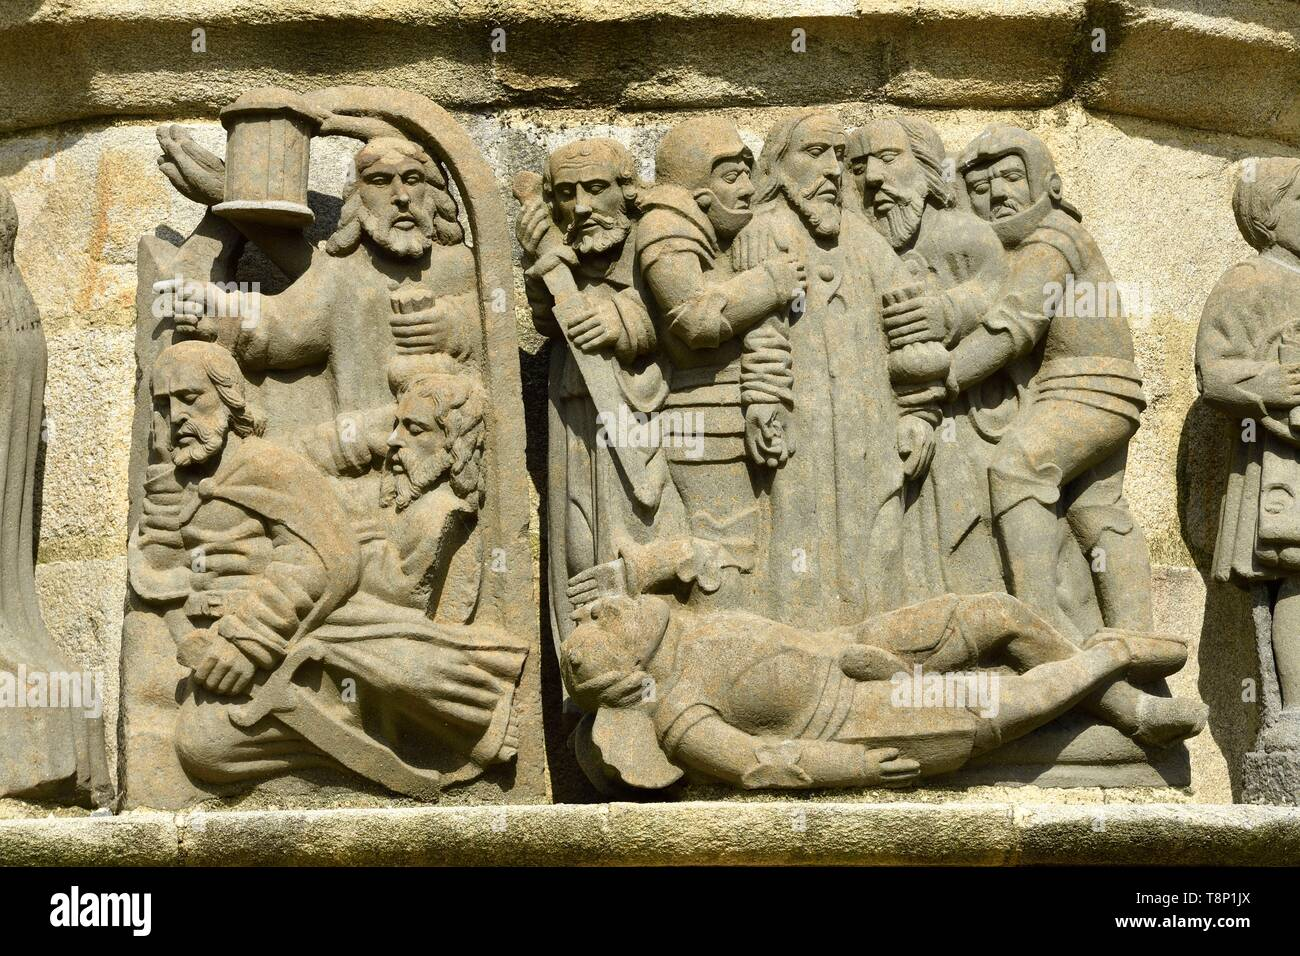 France, Finistere, stop on the Way of St James, Plougonven, parish enclosure, the calvary (1554), life of the Christ scenery - Stock Image